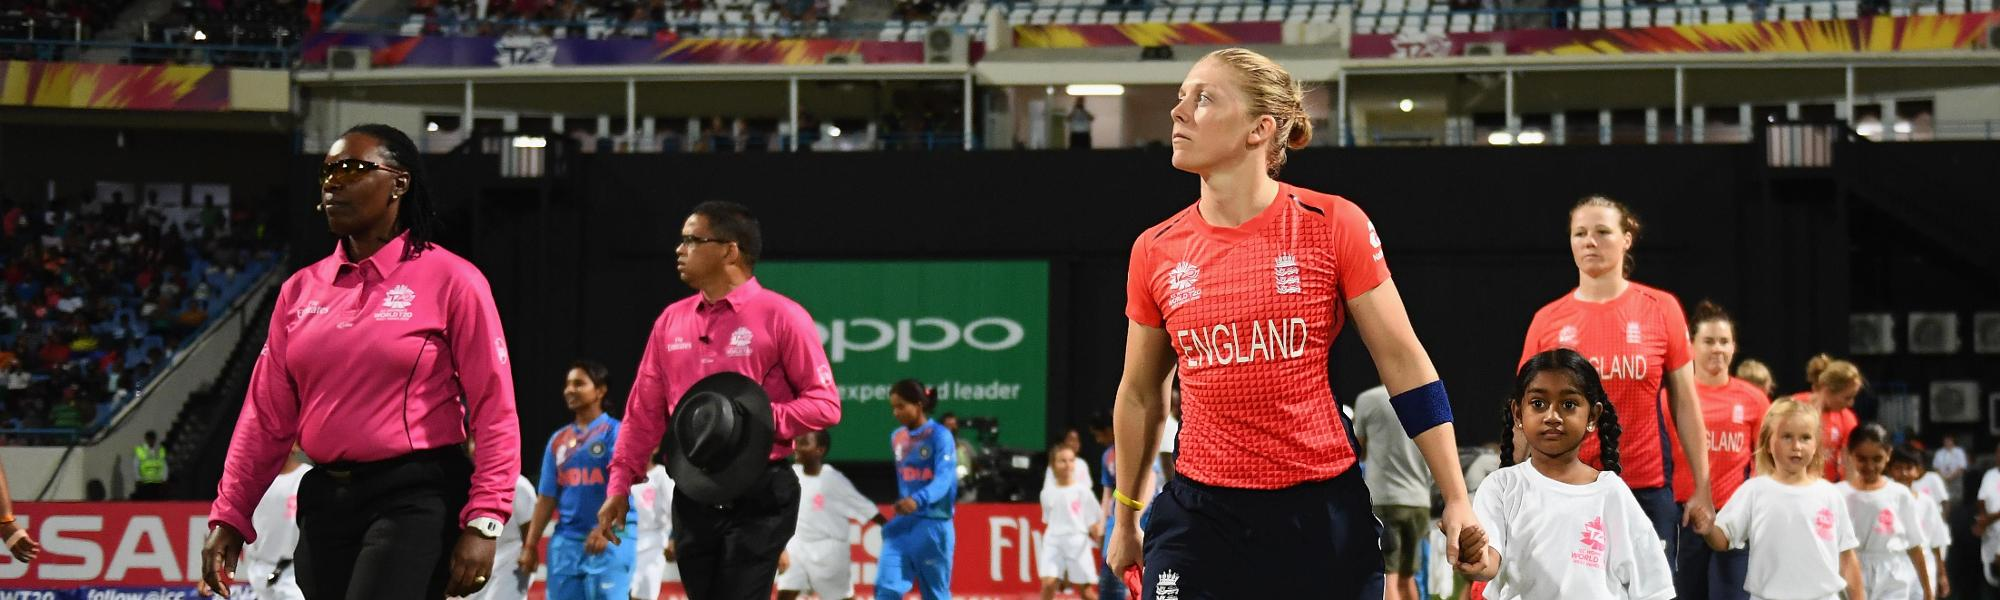 Heather Knight of England leads out her side for the national anthems during the ICC Women's World T20 2018 Semi-Final match between England and India at Sir Viv Richards Cricket Ground on November 22, 2018 in Antigua, Antigua and Barbuda.